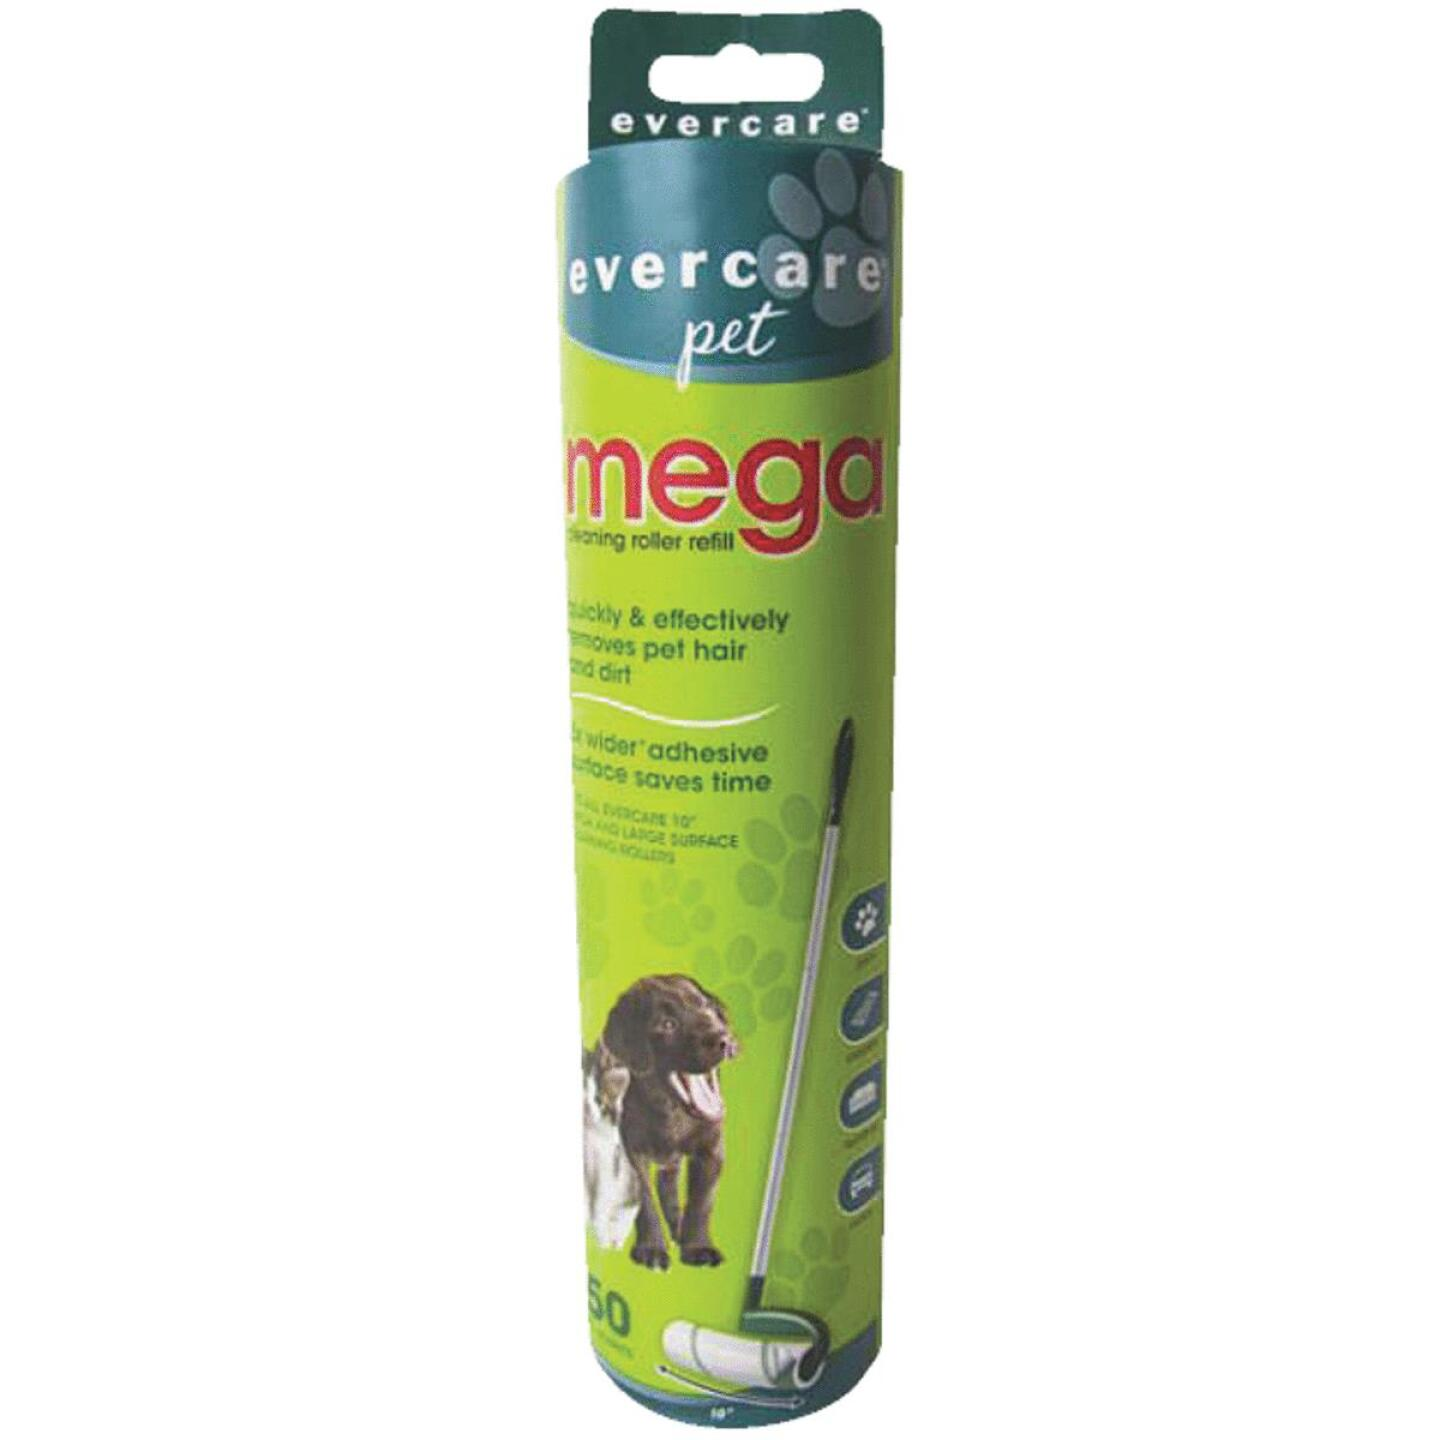 Evercare Pet 10 In. Mega Refill Roll Pet Hair Remover Image 1